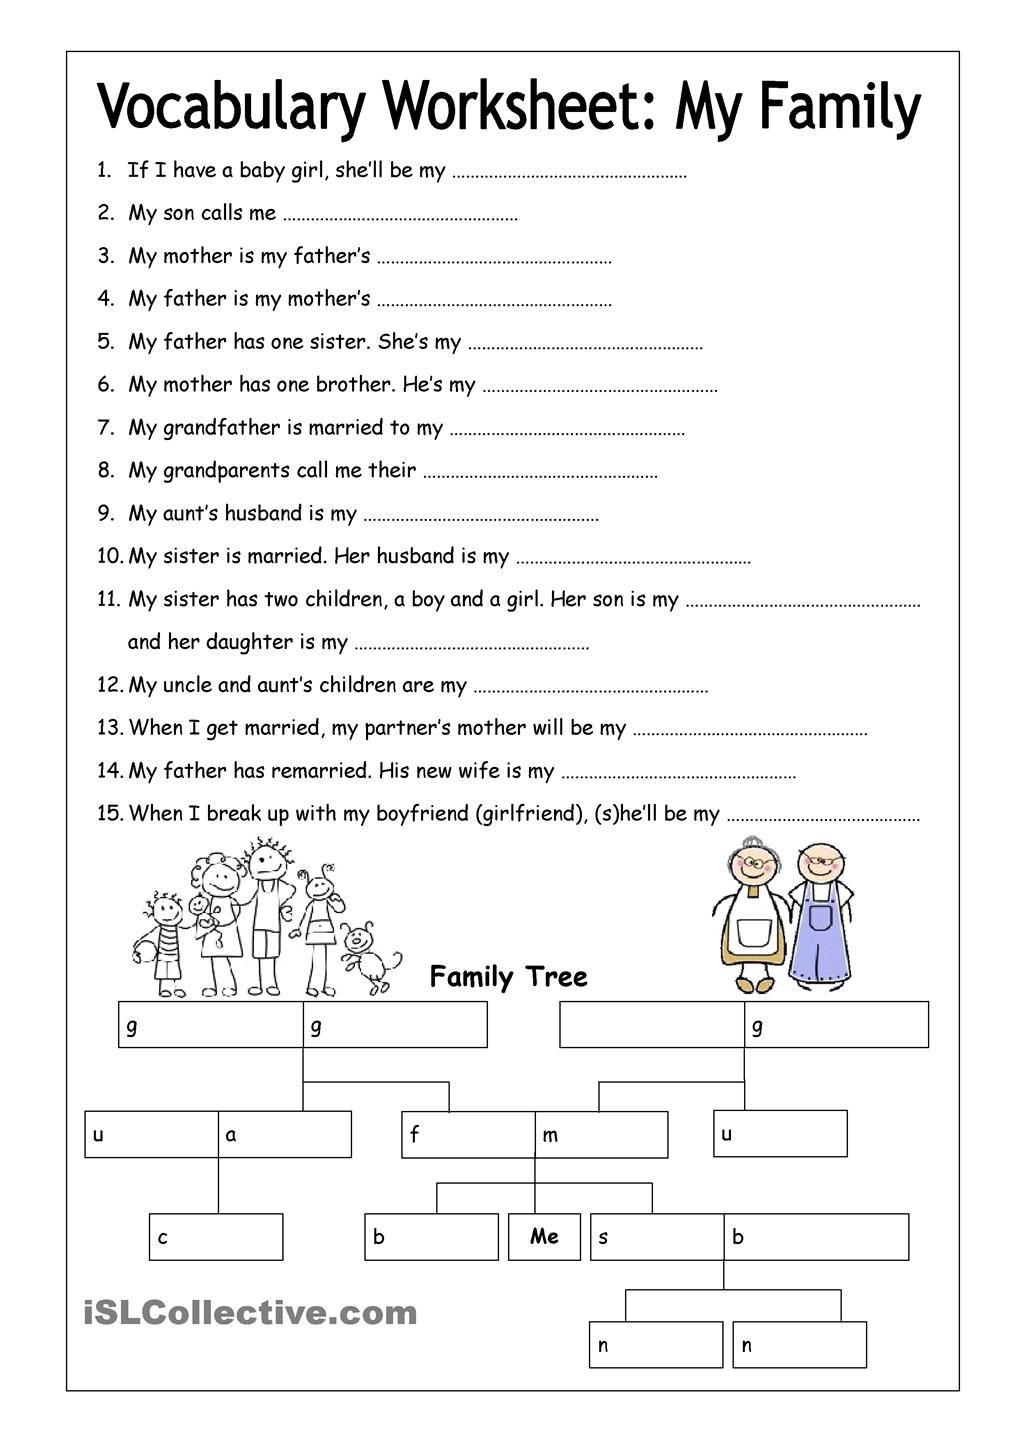 vocabulary worksheet my family medium english 6th grade pinterest worksheets english. Black Bedroom Furniture Sets. Home Design Ideas